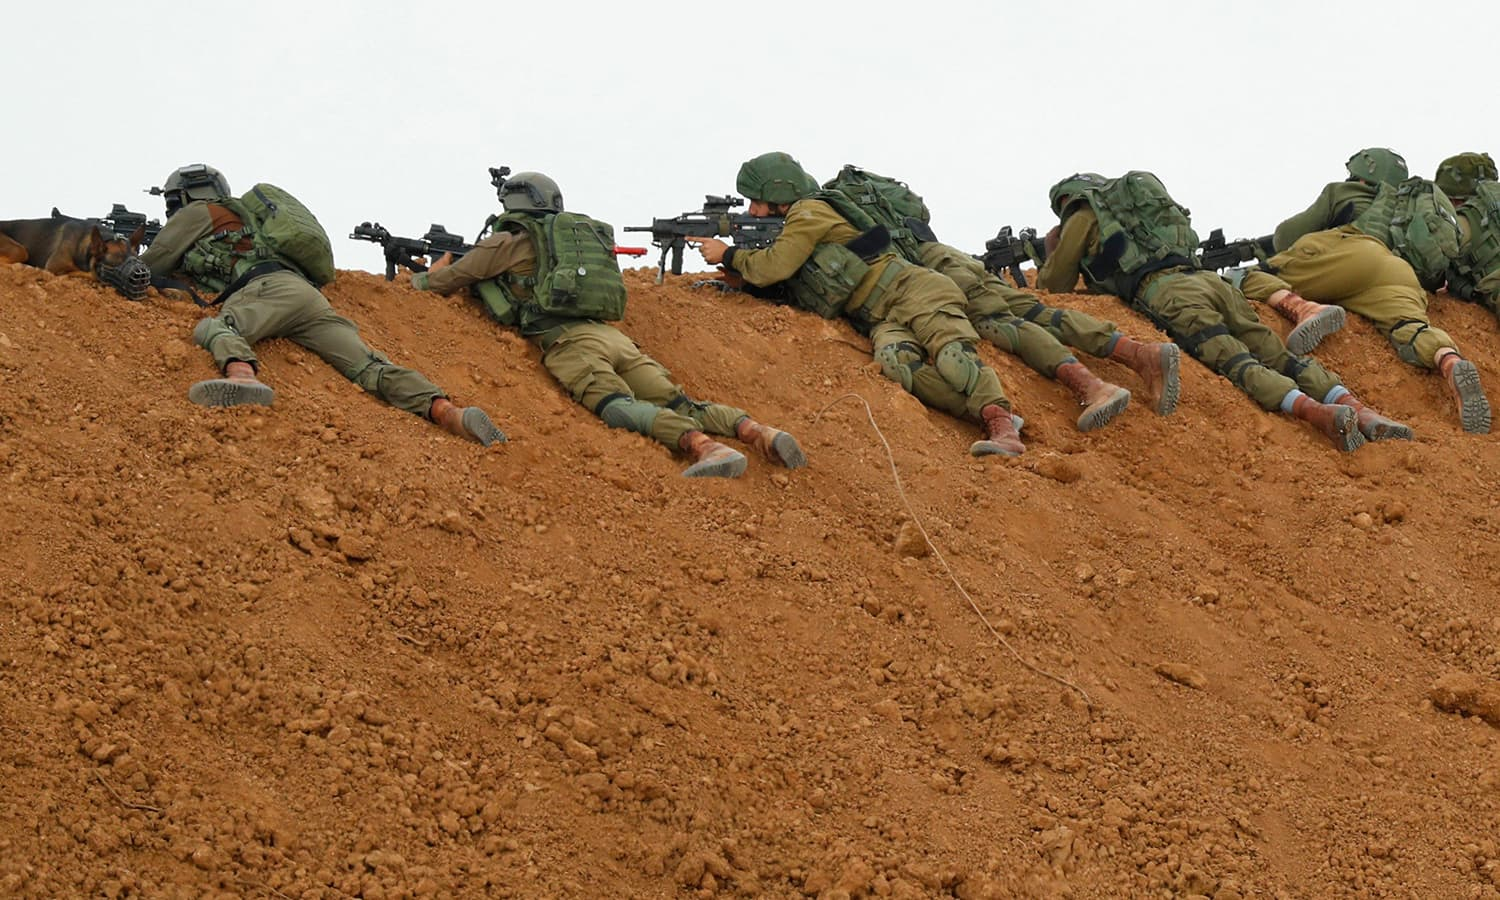 Israeli soldiers take aim as they lie prone over an earth barrier along the border with the Gaza Strip as Palestinians demonstrate on the other side. ─AFP